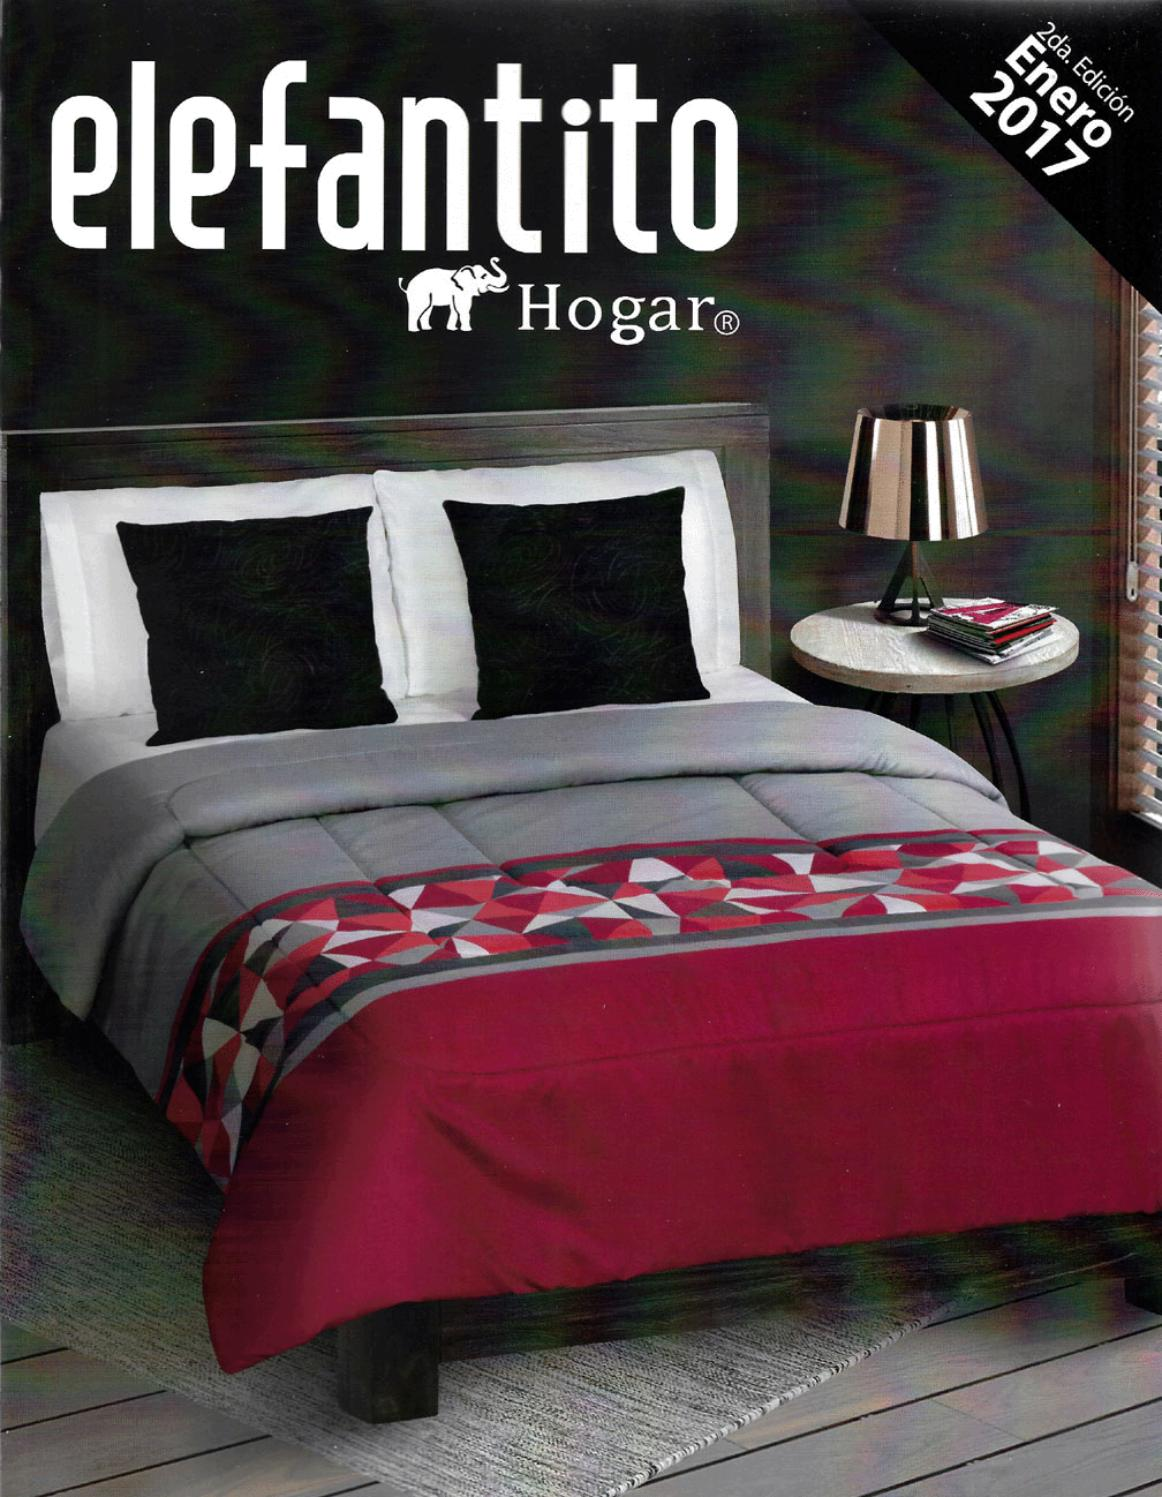 Catalogo colchas elefantito 2017 by catalogos por internet for Catalogo bricoman elmas 2017